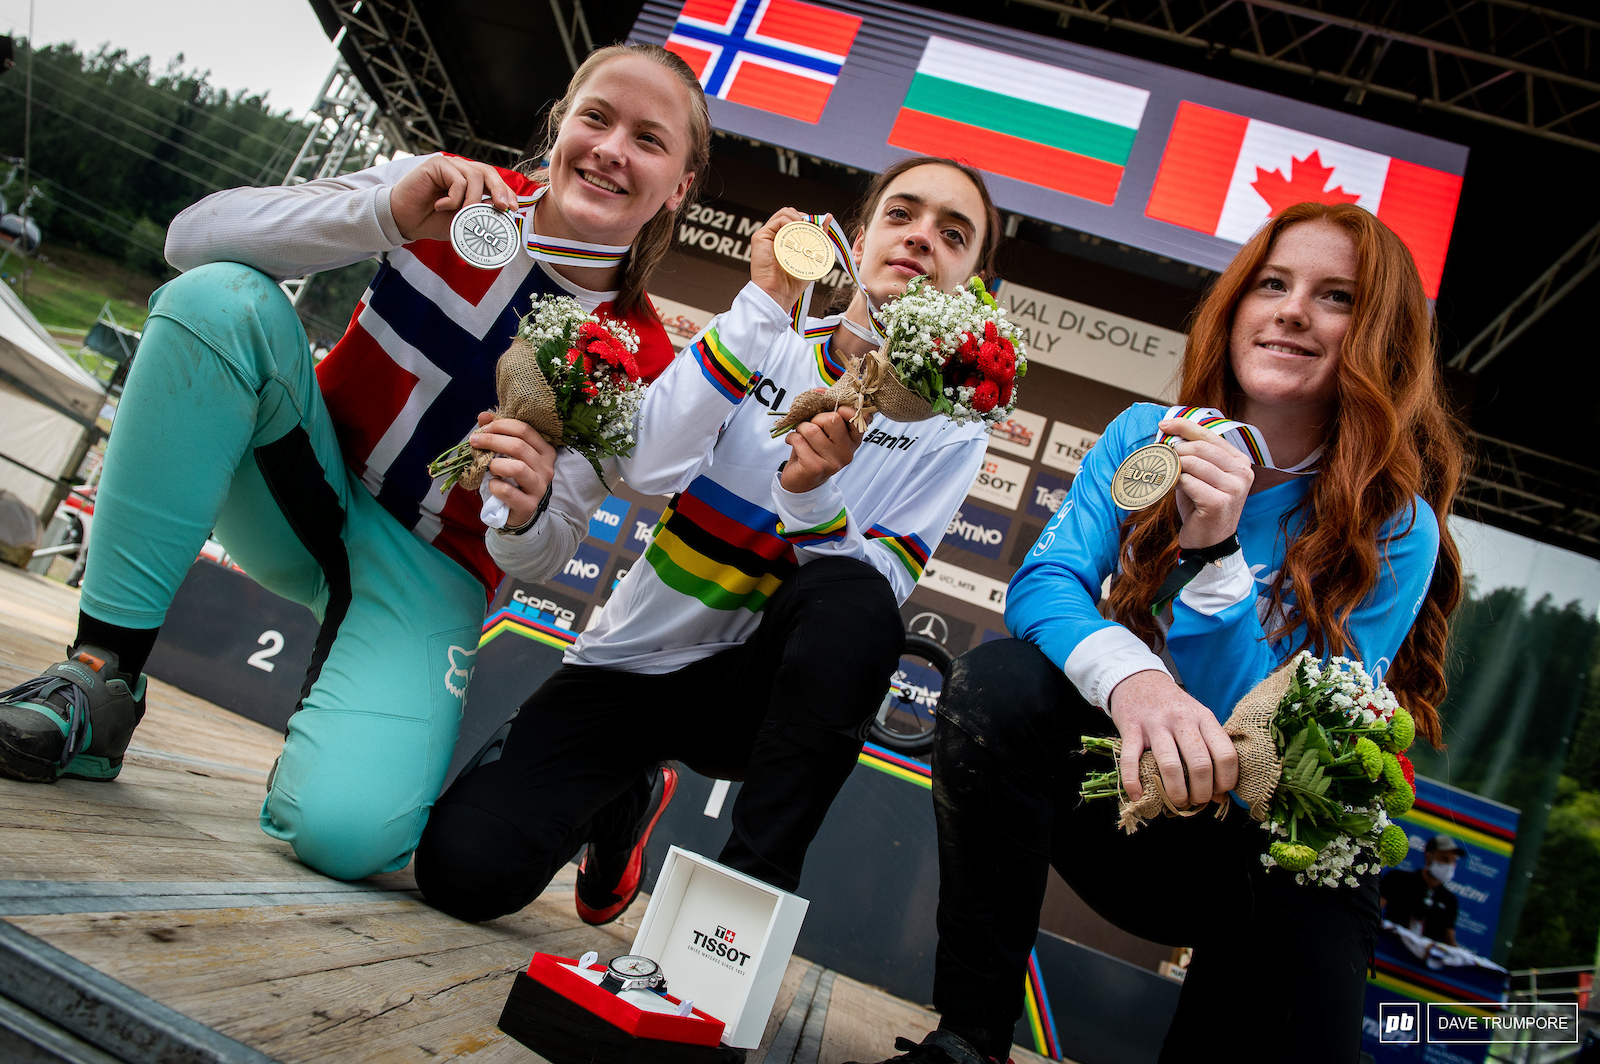 Izabela Yankova Kine Haugom Gracey Hemstreet with the gold silver and bronze medals for the Junior Women